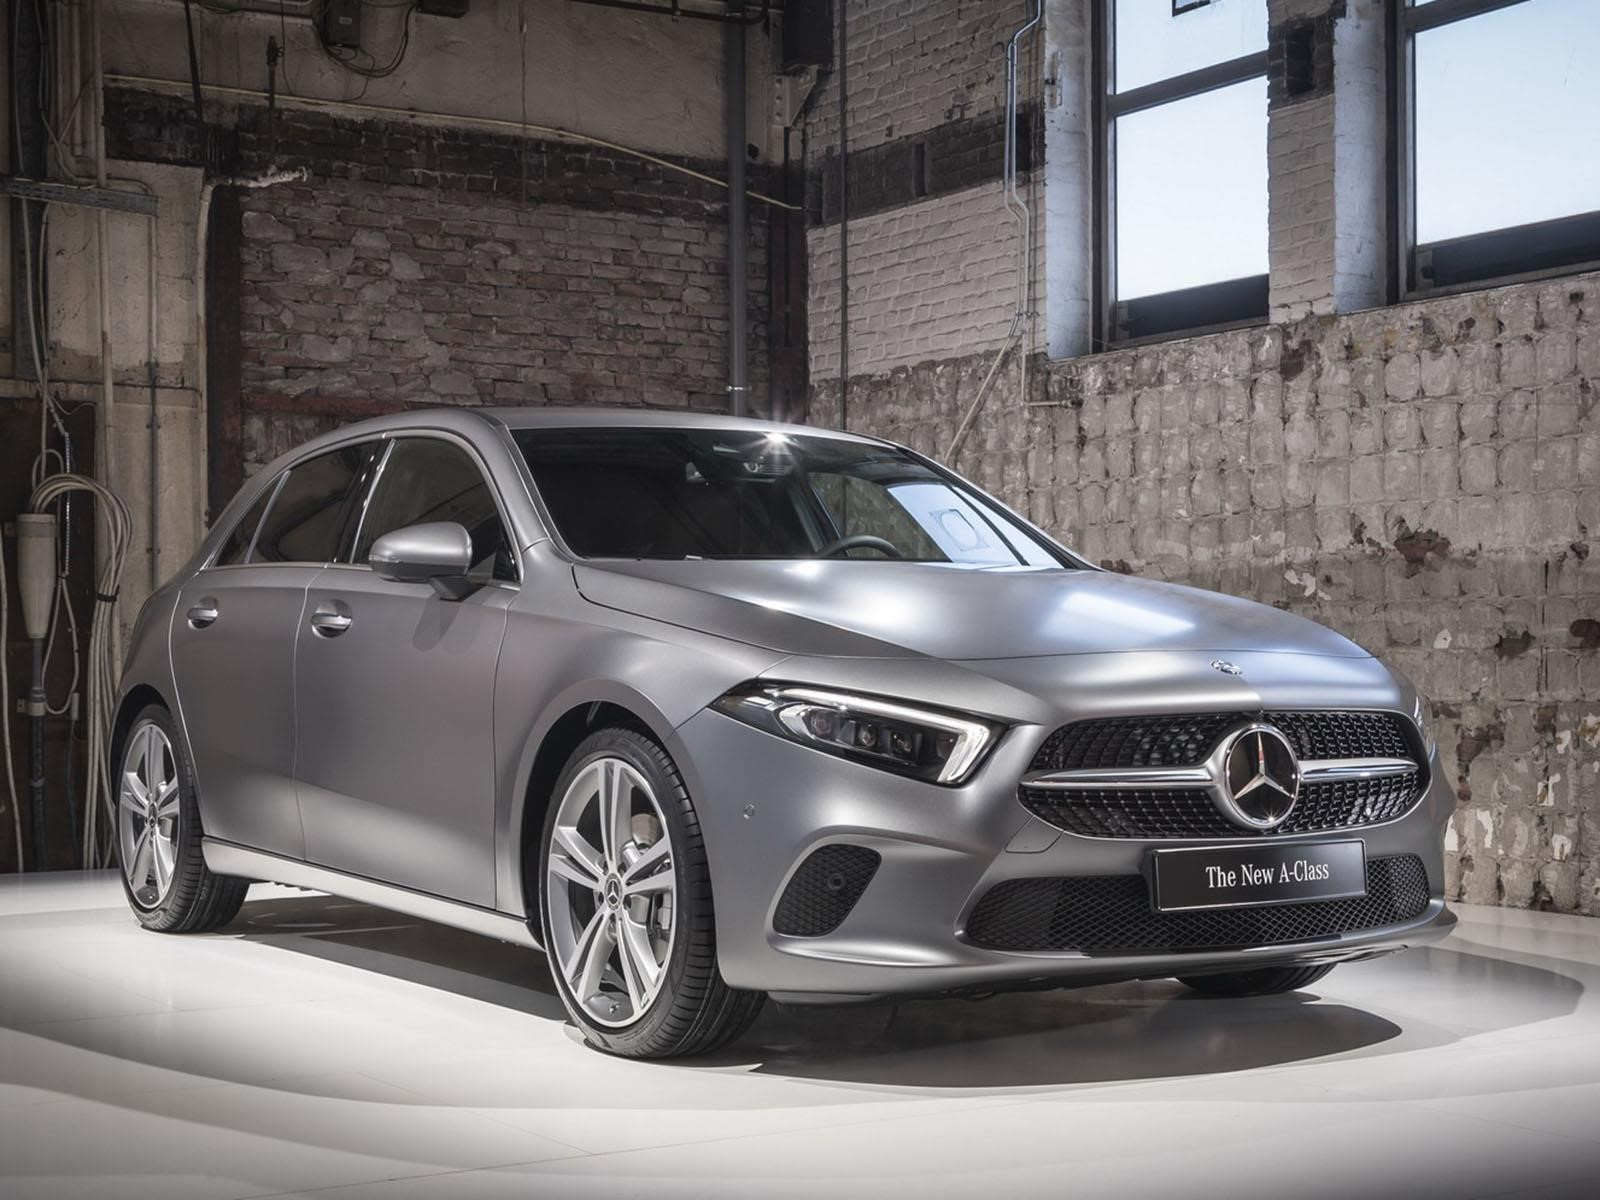 Mercedes benz clase a 2018 el nuevo punto de referencia for Mercedes benz clase a 2018